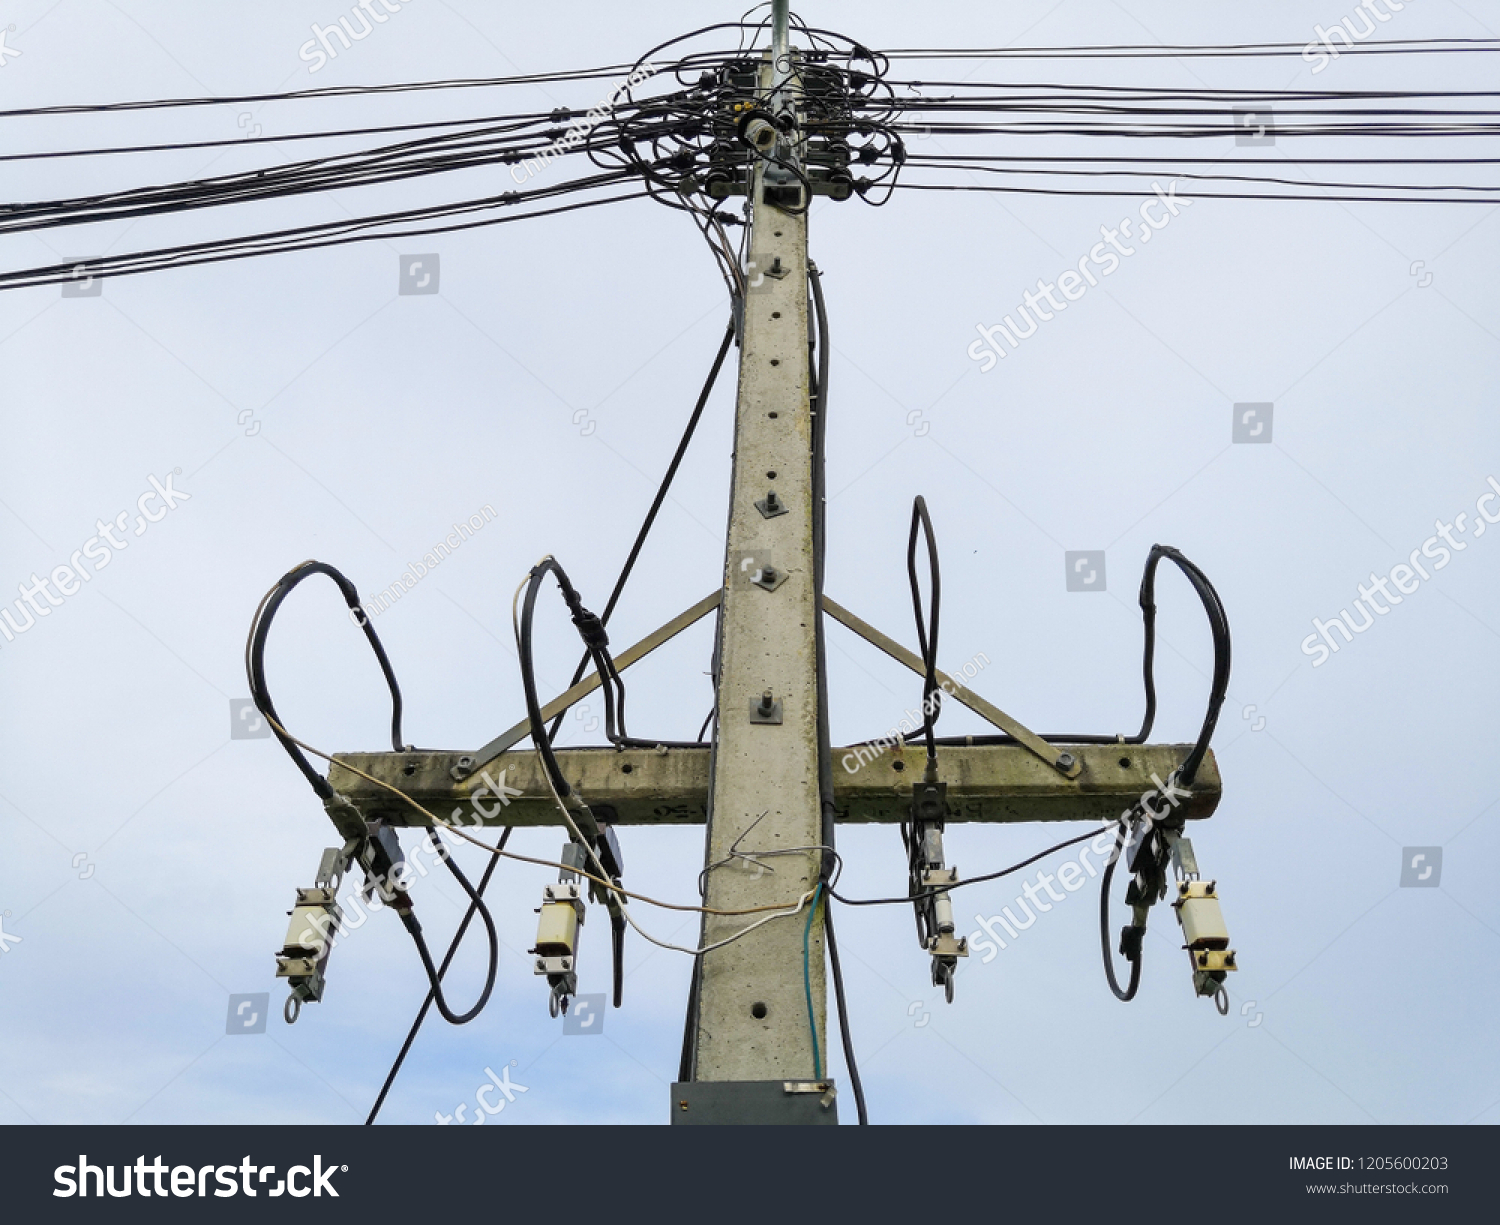 hight resolution of high voltage wiring and fuse kit to prevent short circuit when overloaded on concrete pole